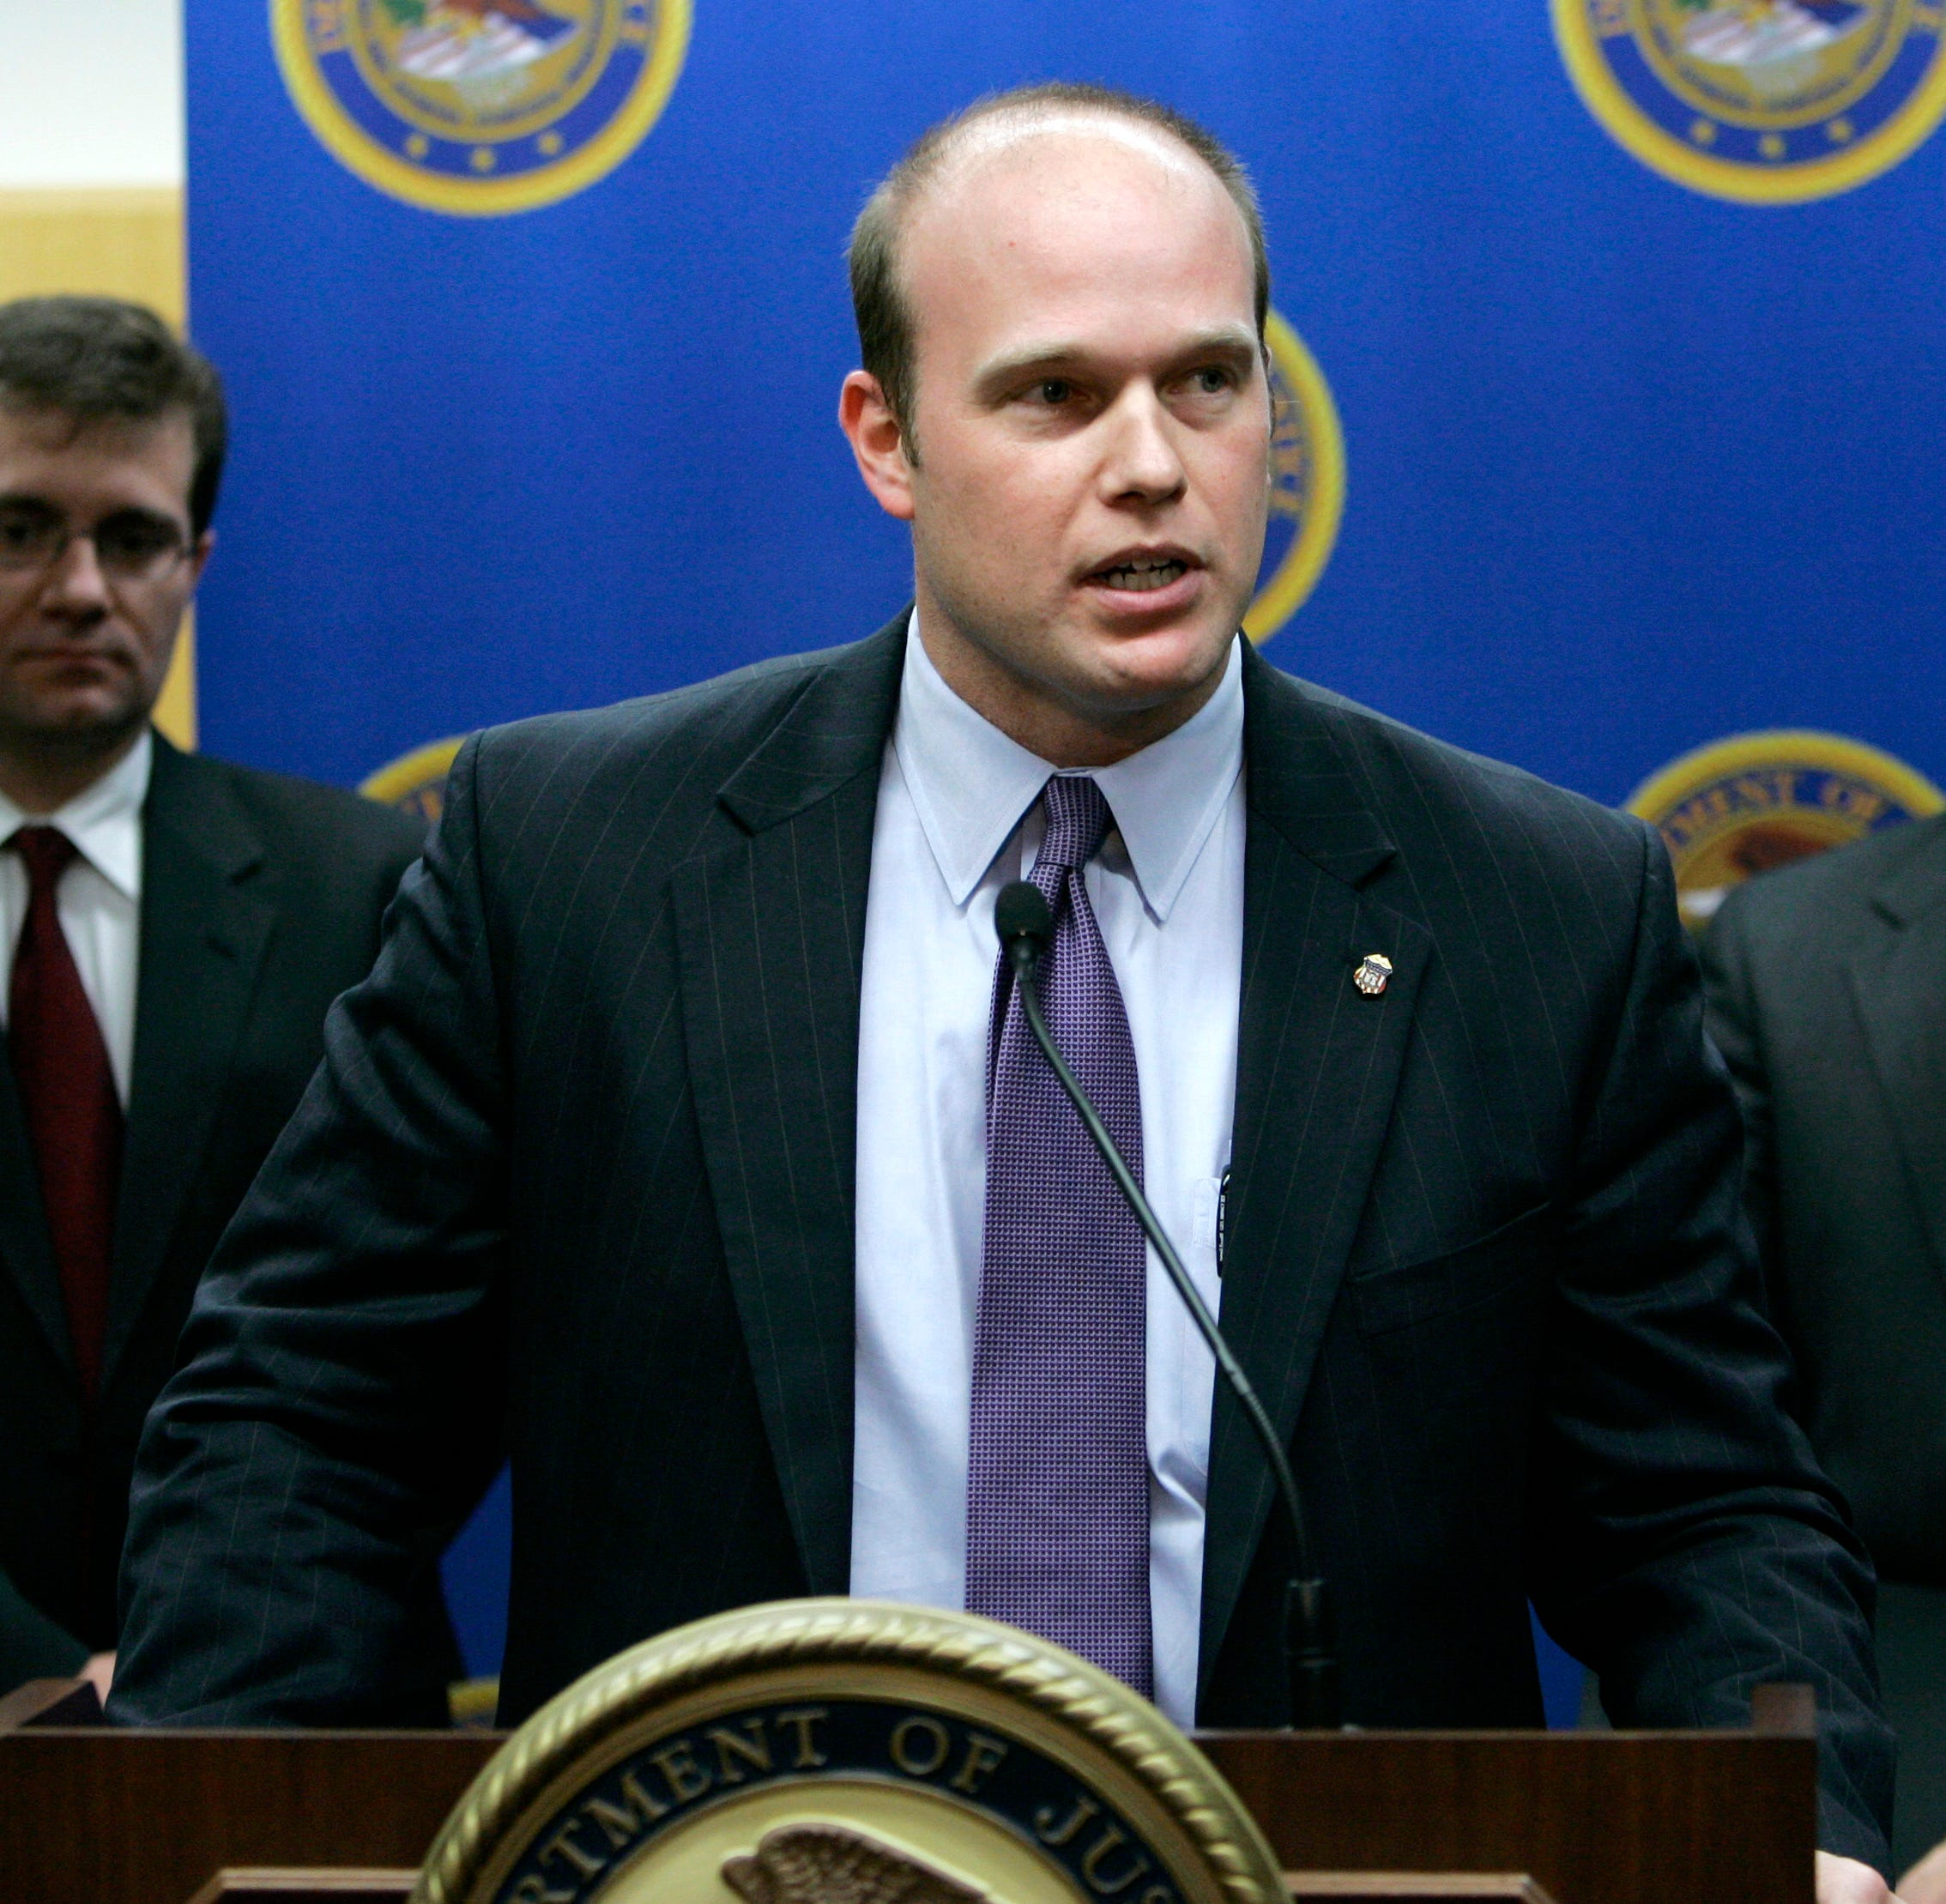 Here are 5 reasons why Matthew Whitaker isn't attorney general material